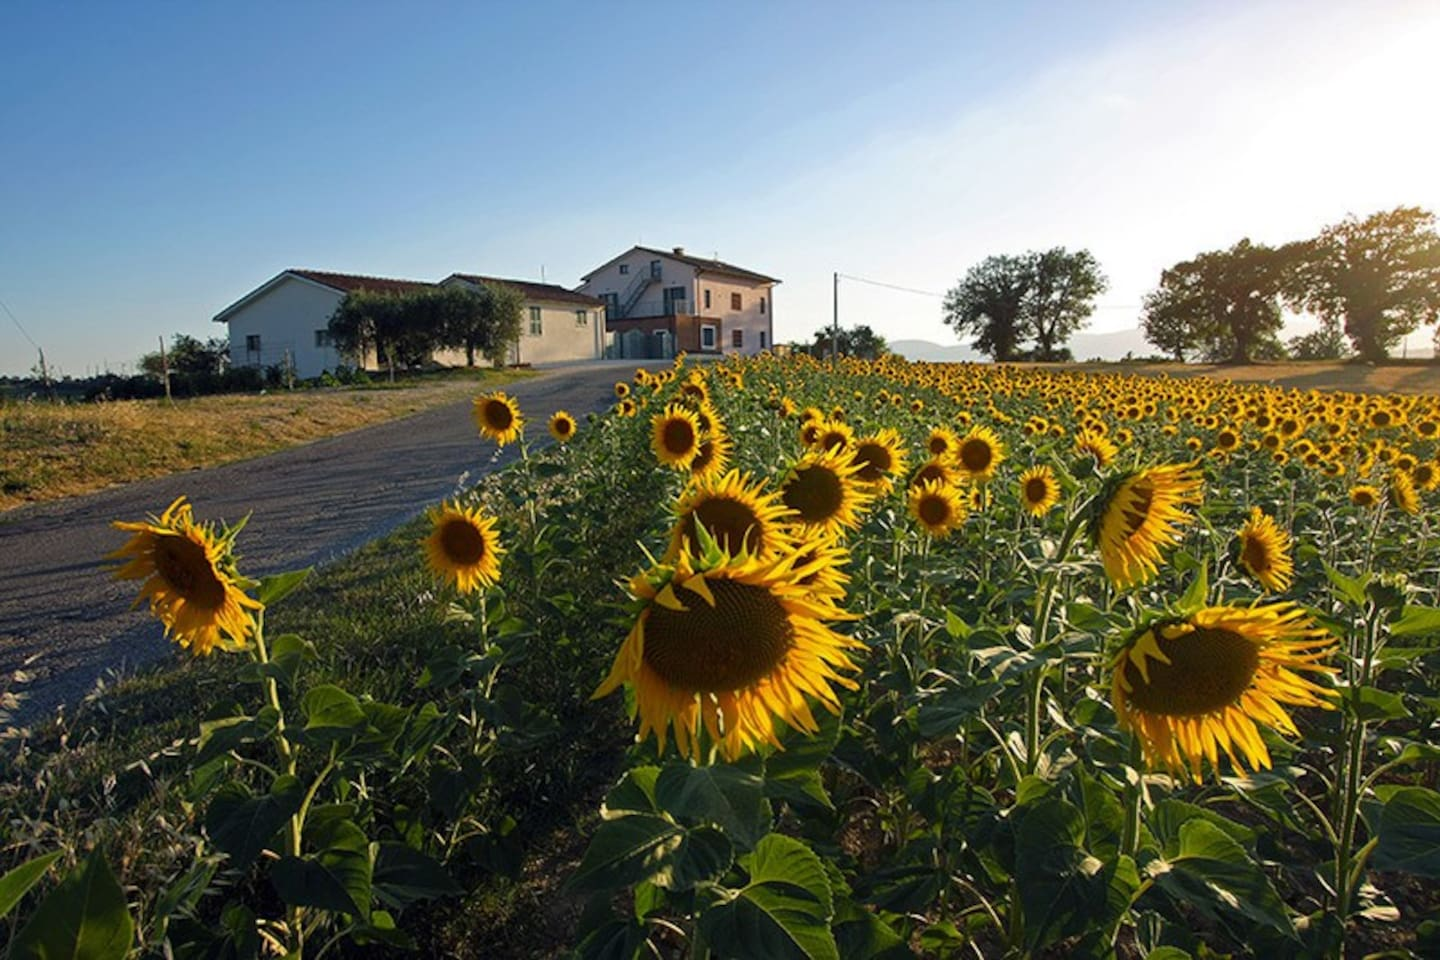 lacollinadelgirasole.it